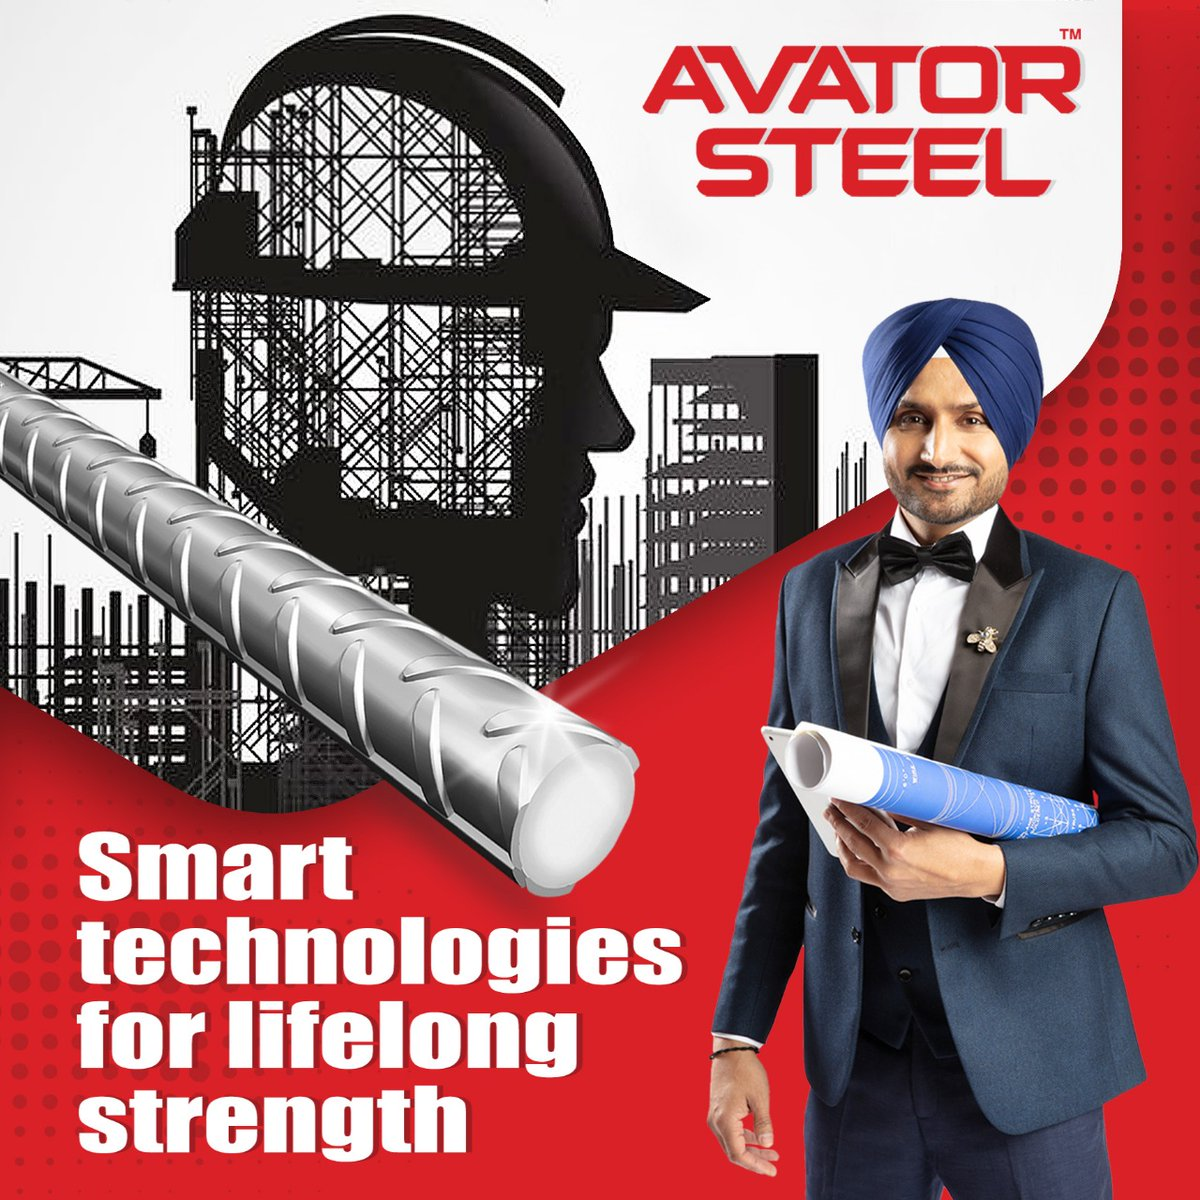 Made with the latest technology, #AvatorSteel gives your home the ultimate protection against earthquakes, rust, etc.  #HarbhajanSingh #RustProof #EarthquakeProof  @harbhajan_singh